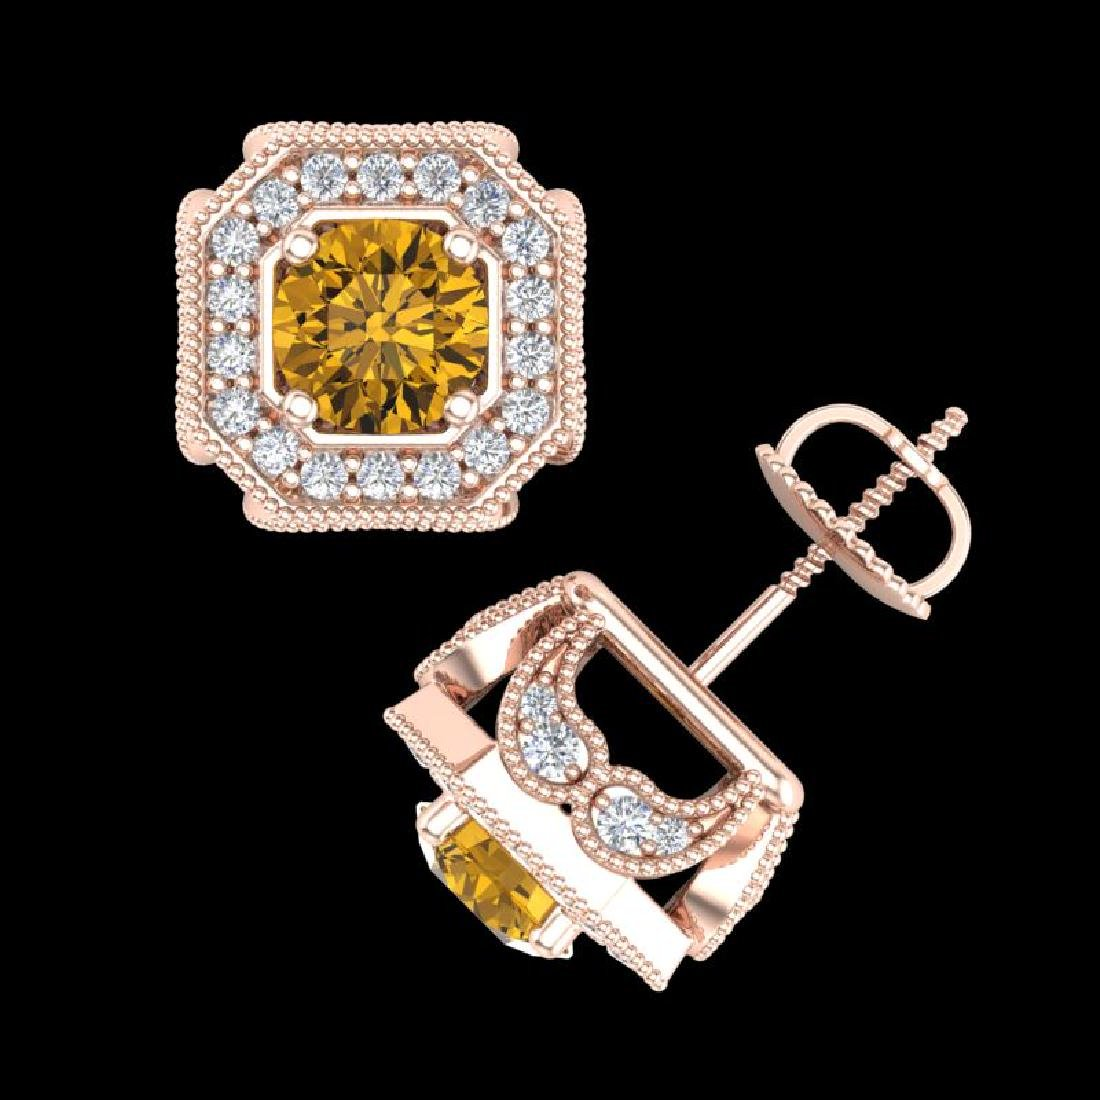 2.75 CTW Intense Fancy Yellow Diamond Art Deco Stud - 3